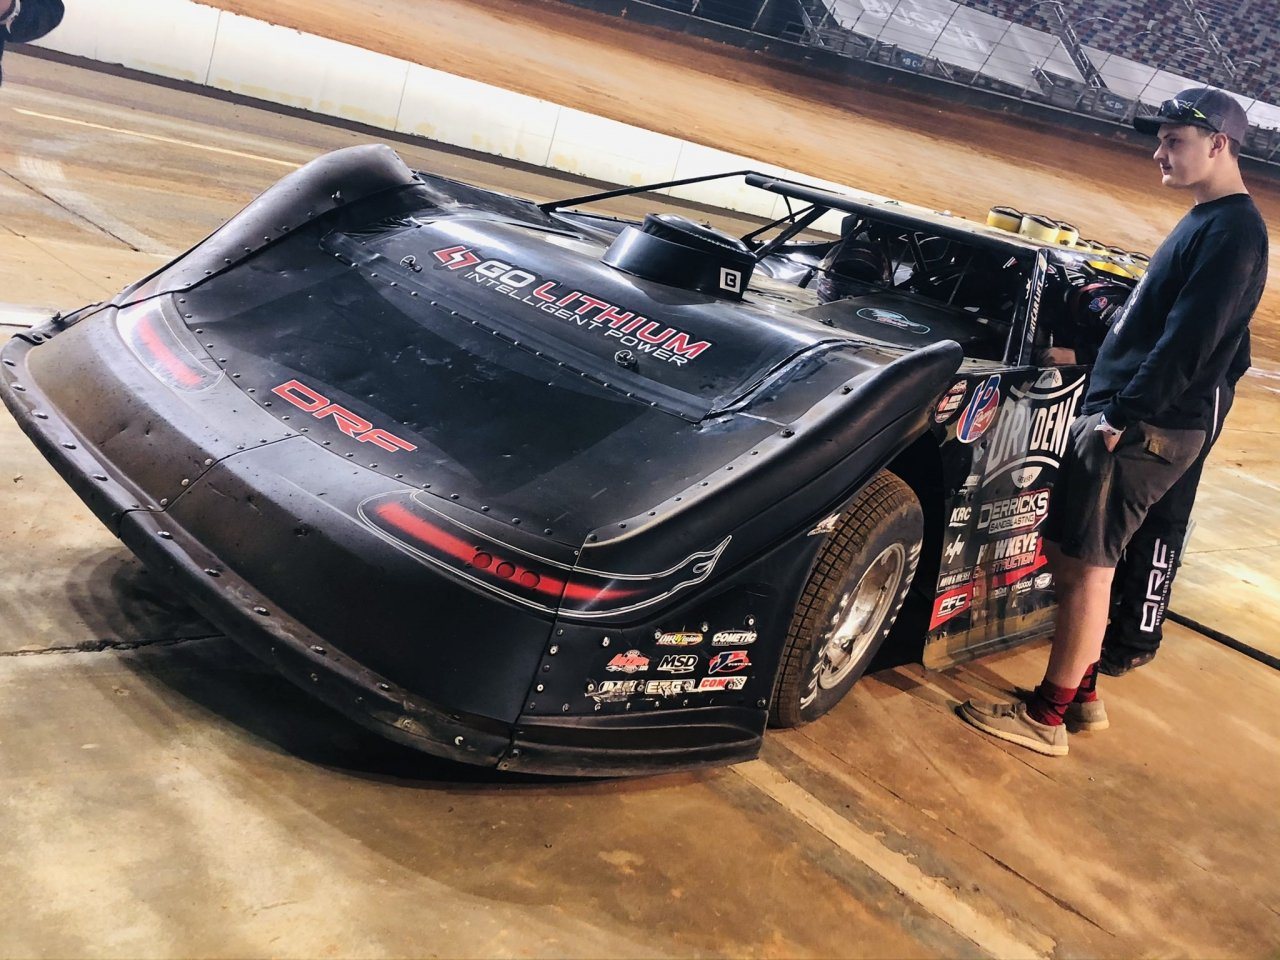 Ricky Weiss - Bristol Dirt Track - World of Outlaws Late Models